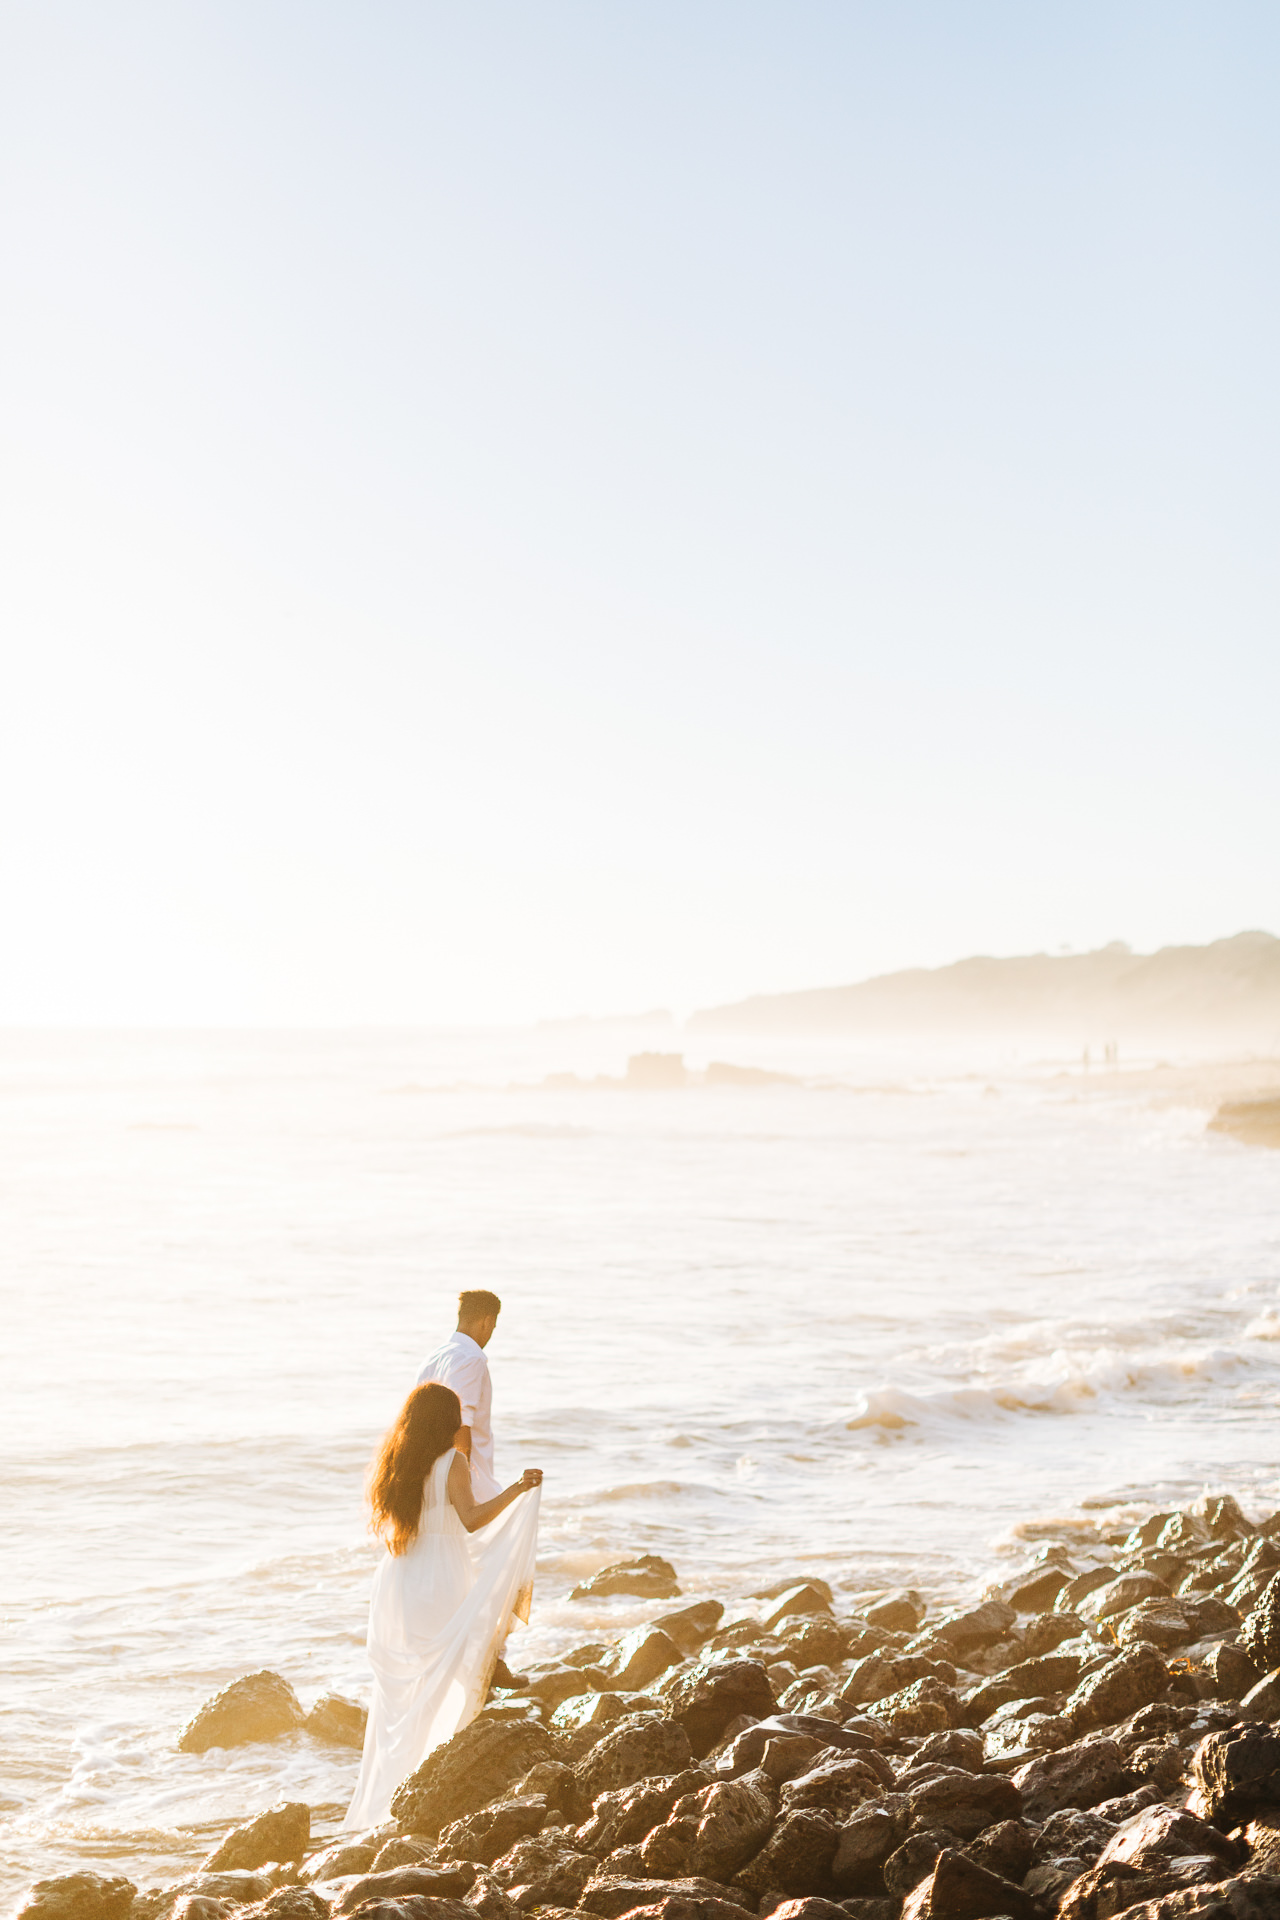 Nanis&Jay-Crystal-Cove-Beach-Engagement-Session-Clarisse-Rae-Photo-&-Video-Orange-County-Wedding-Photographer-&-Videographer_37